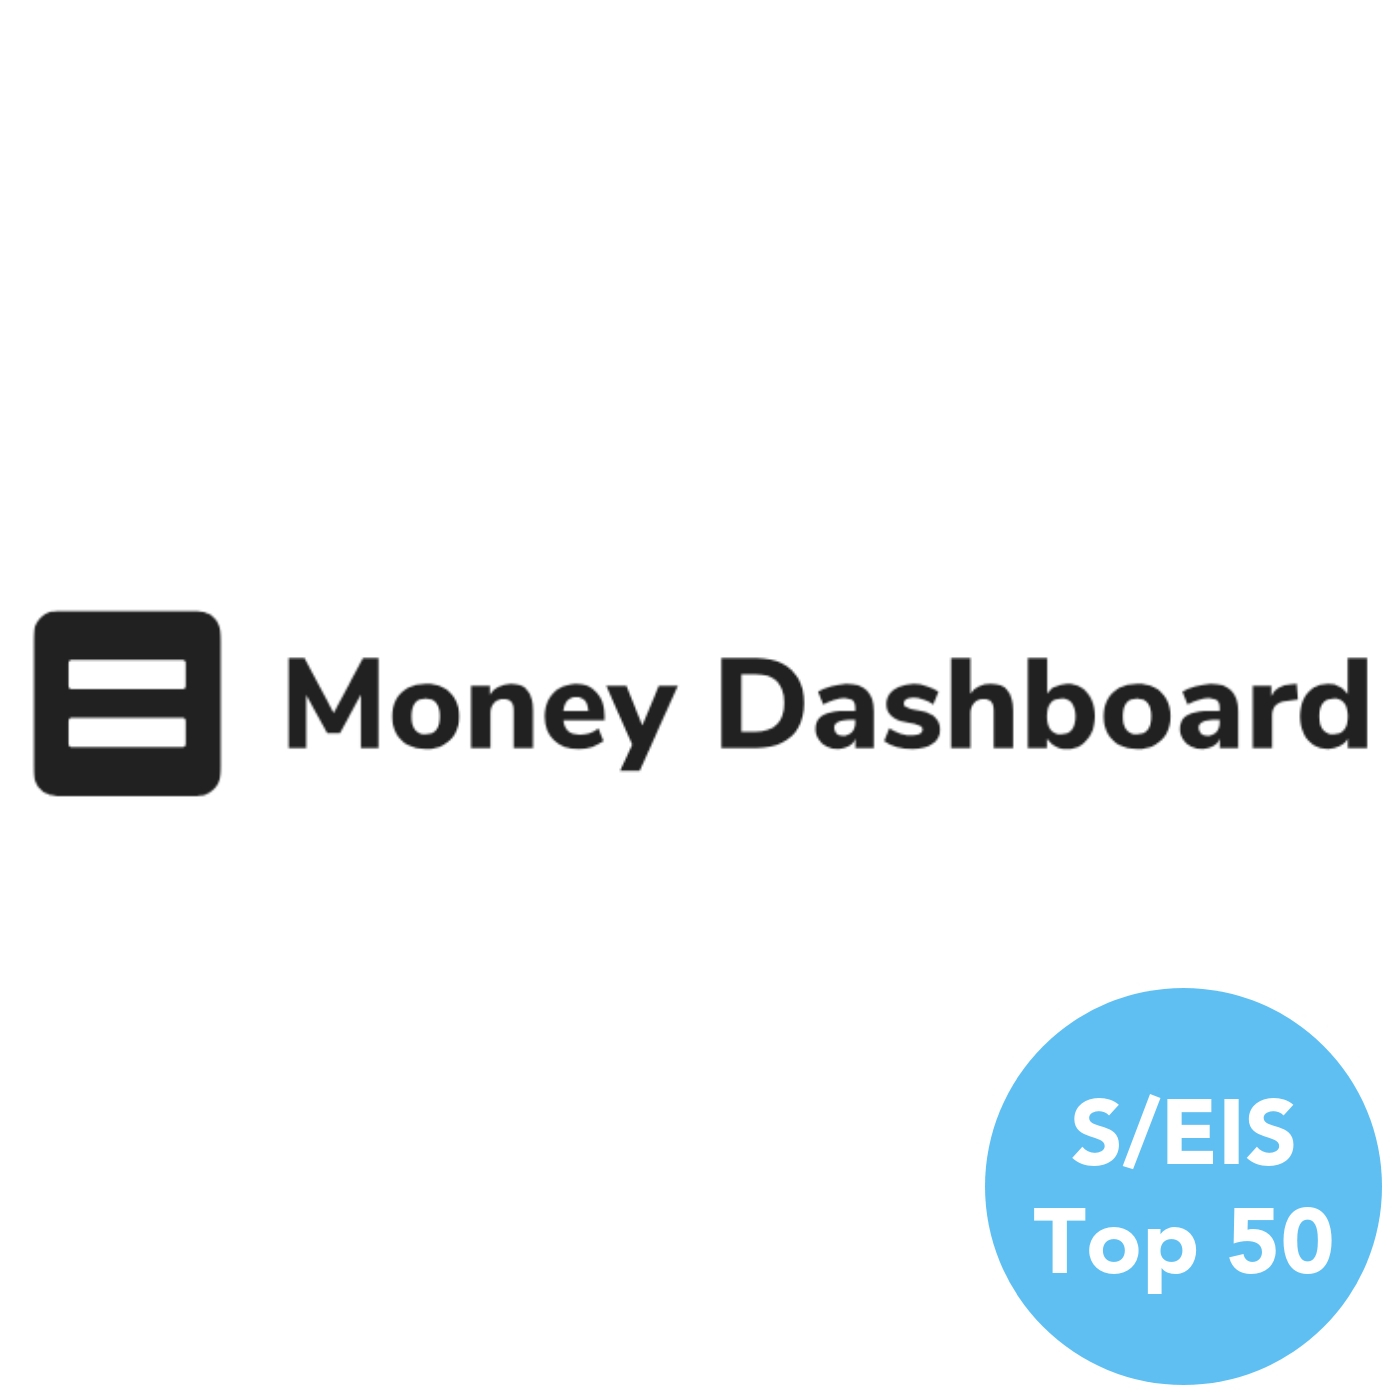 Money Dashboard | S/EIS Top 50